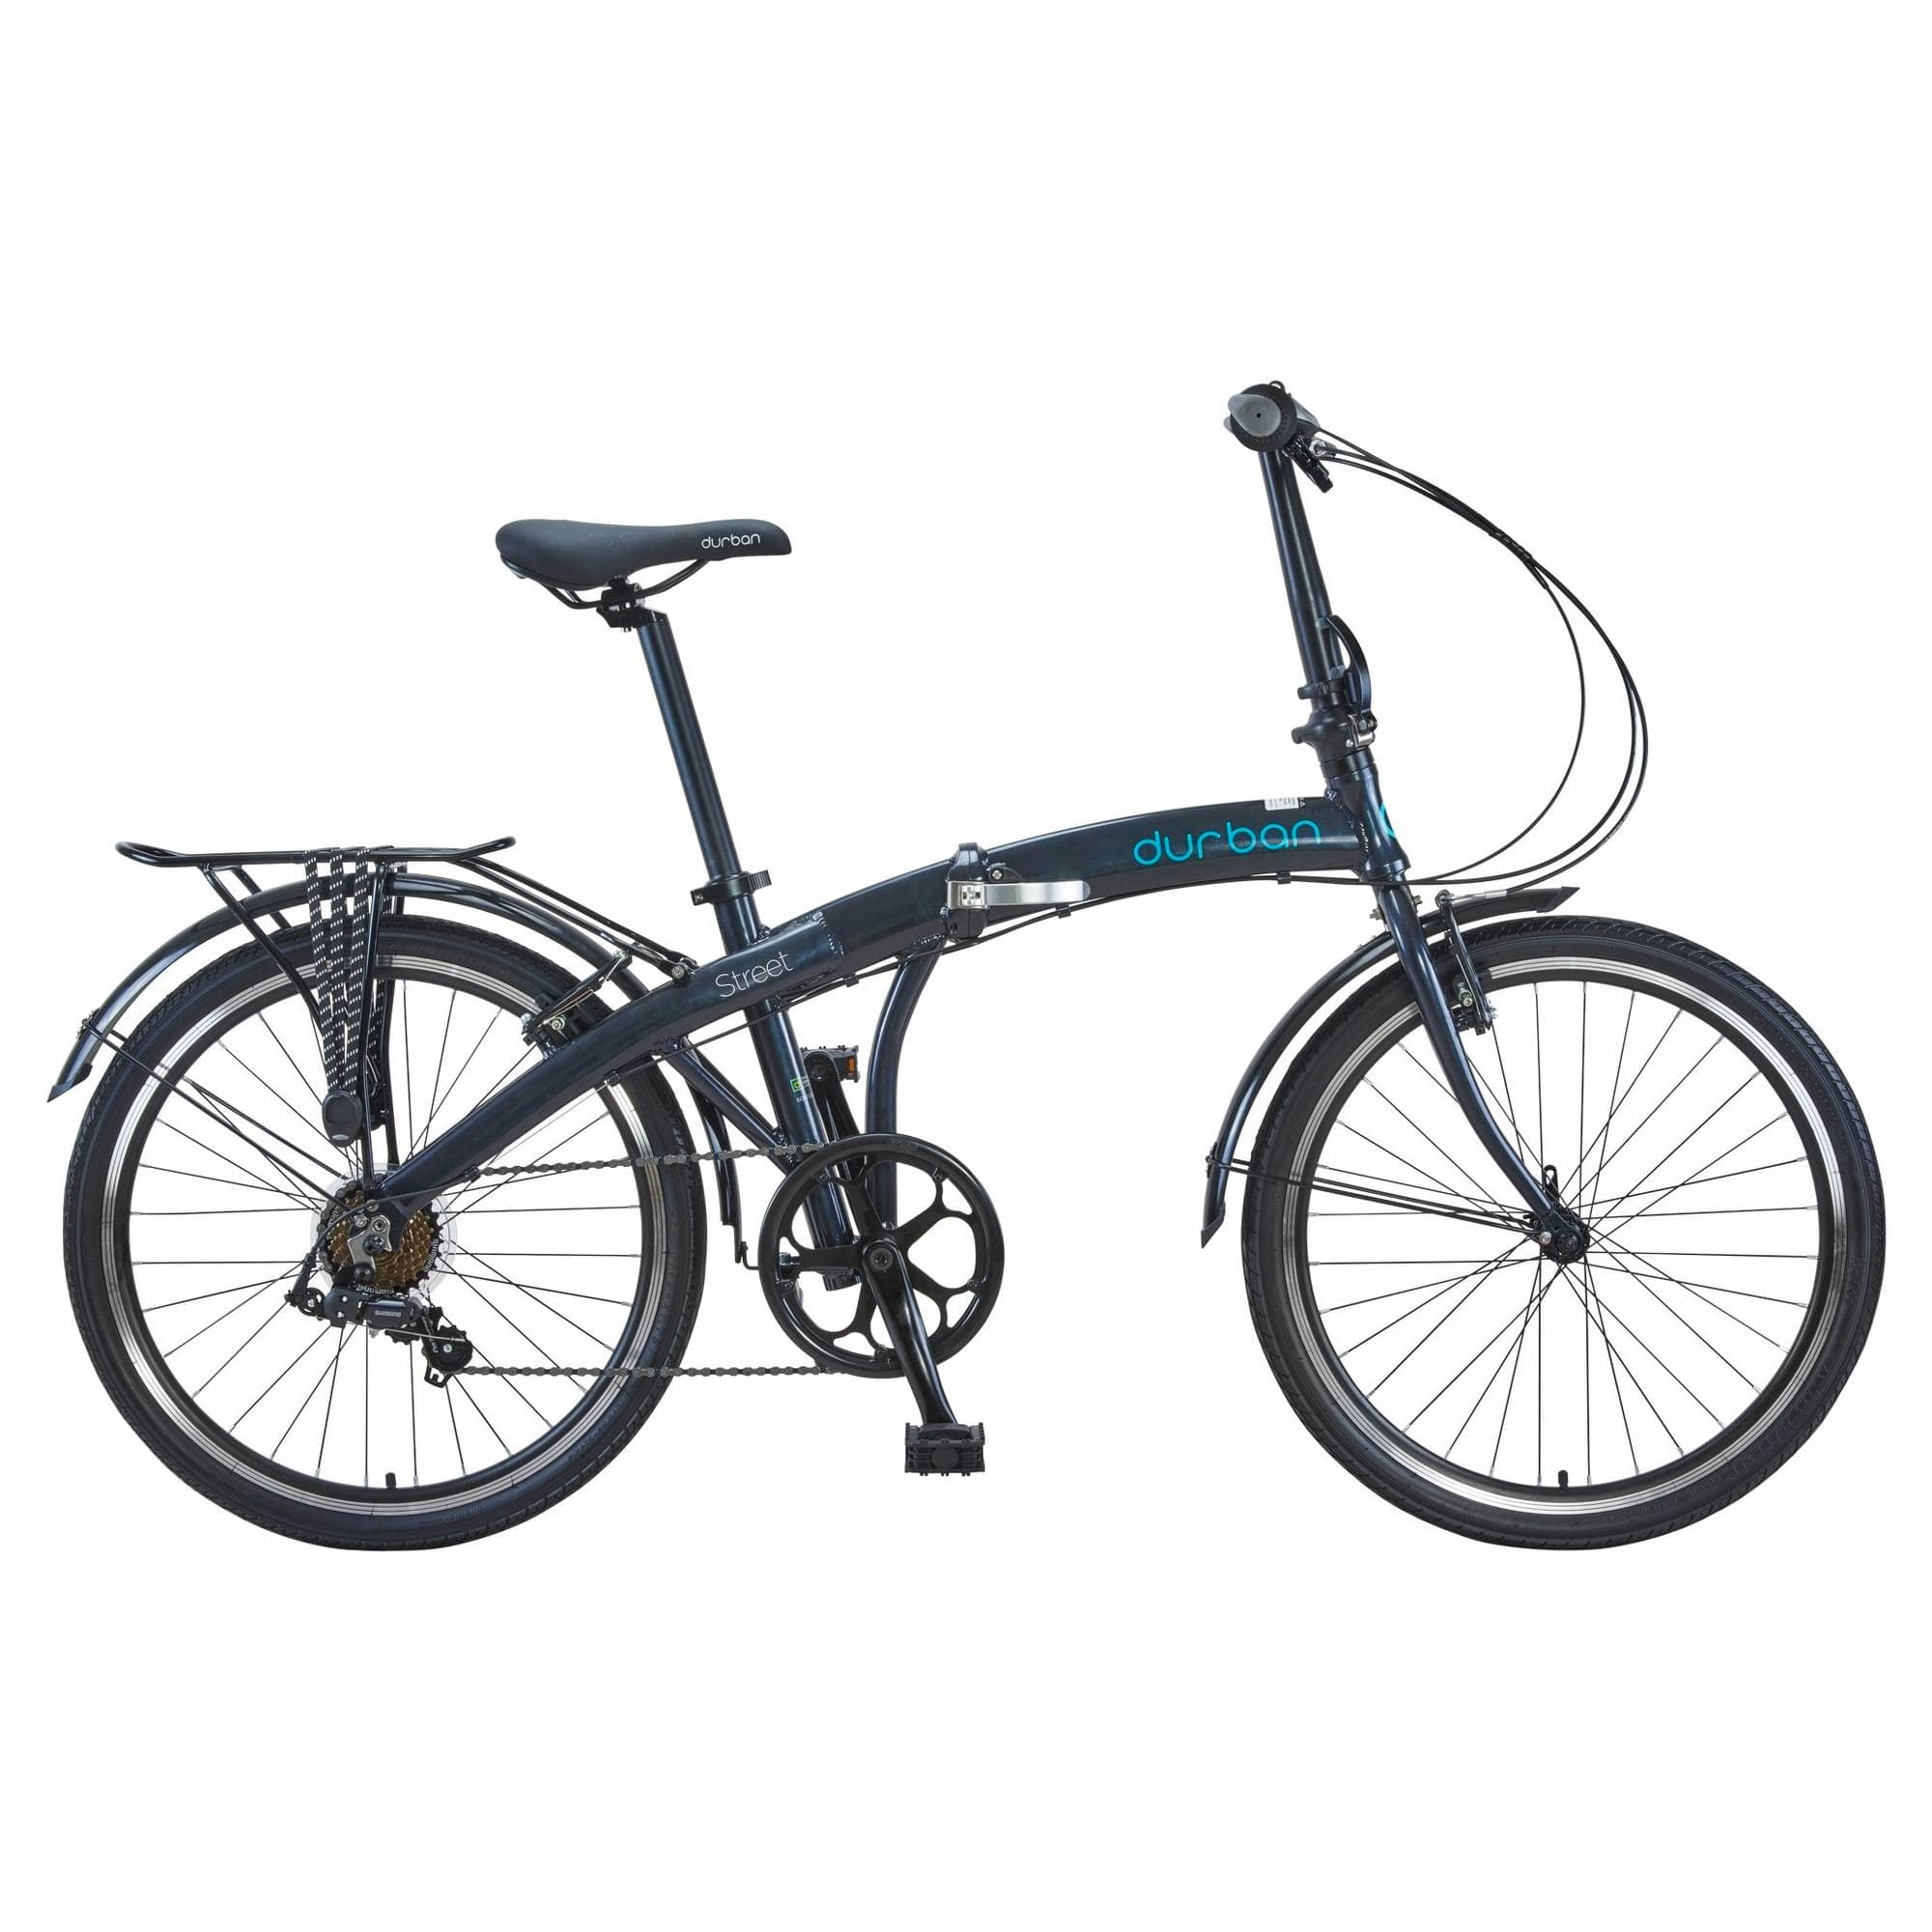 Durban Street Folding Bike- Black $125 Clearance YMMV